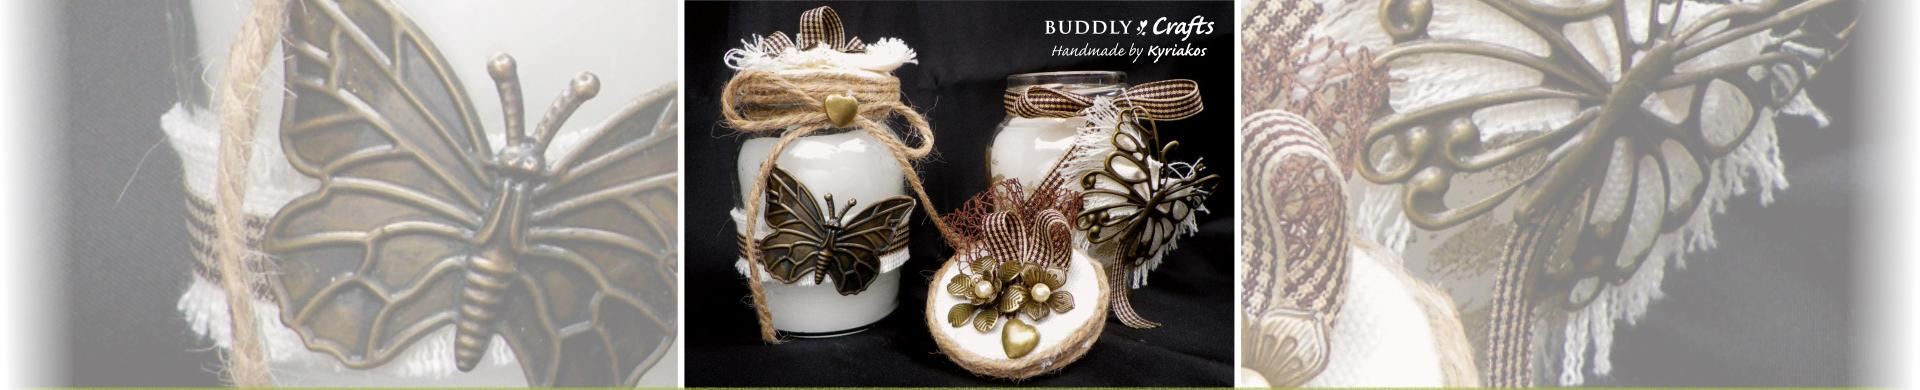 Make Your Own Luxury Jar Candles